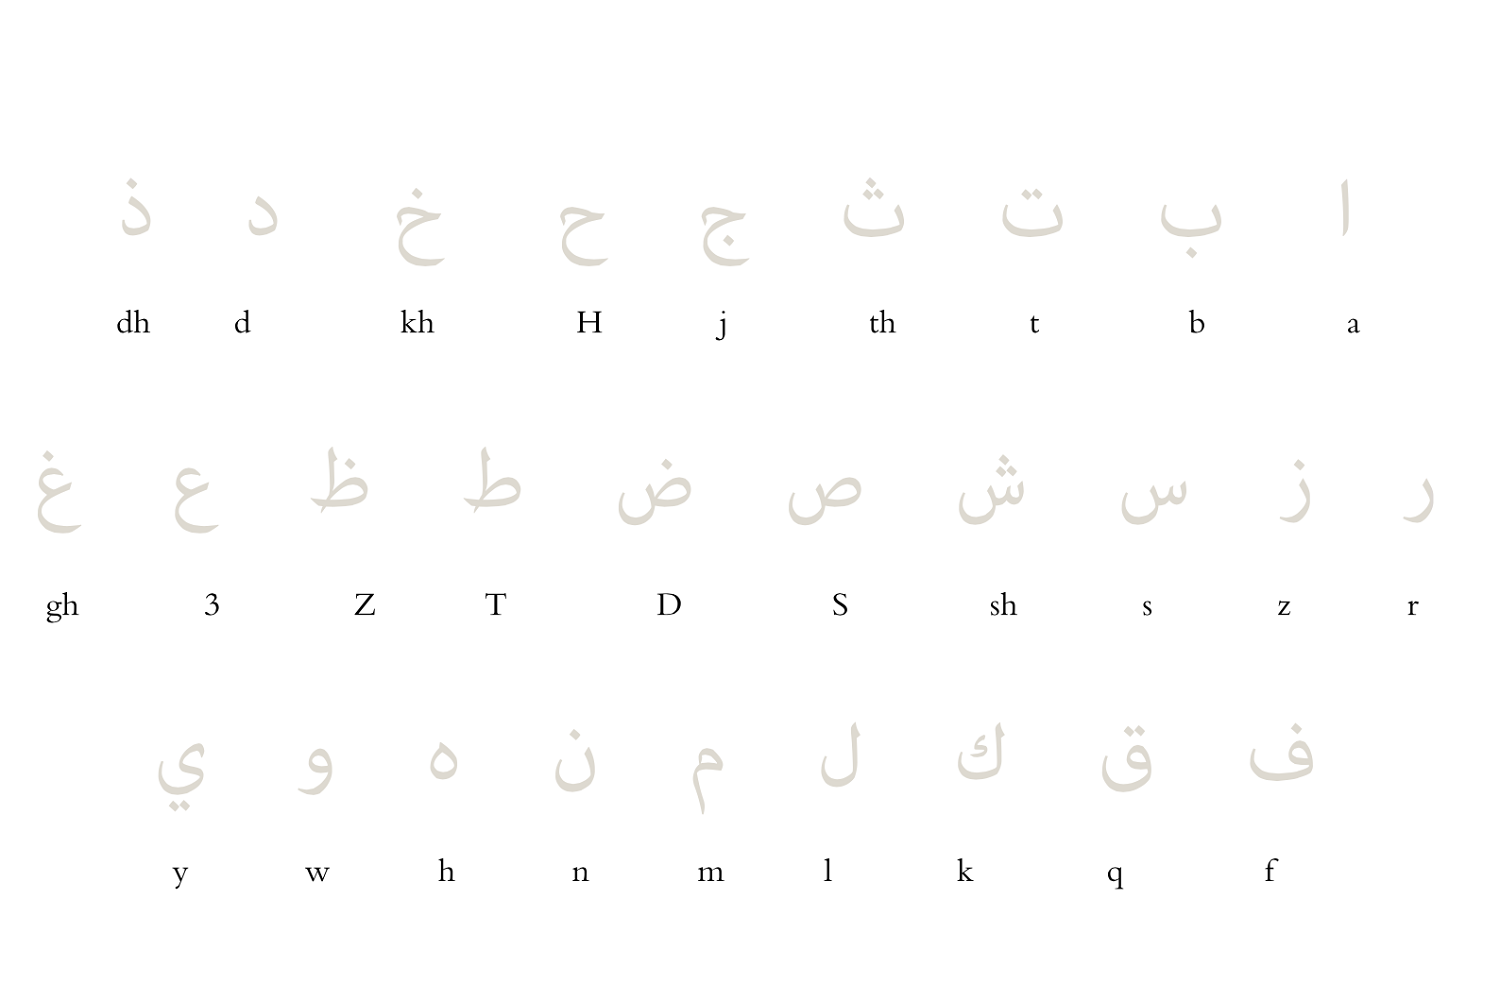 worksheet Arabic Letters Worksheets arabic alphabet worksheets activity shelter practice